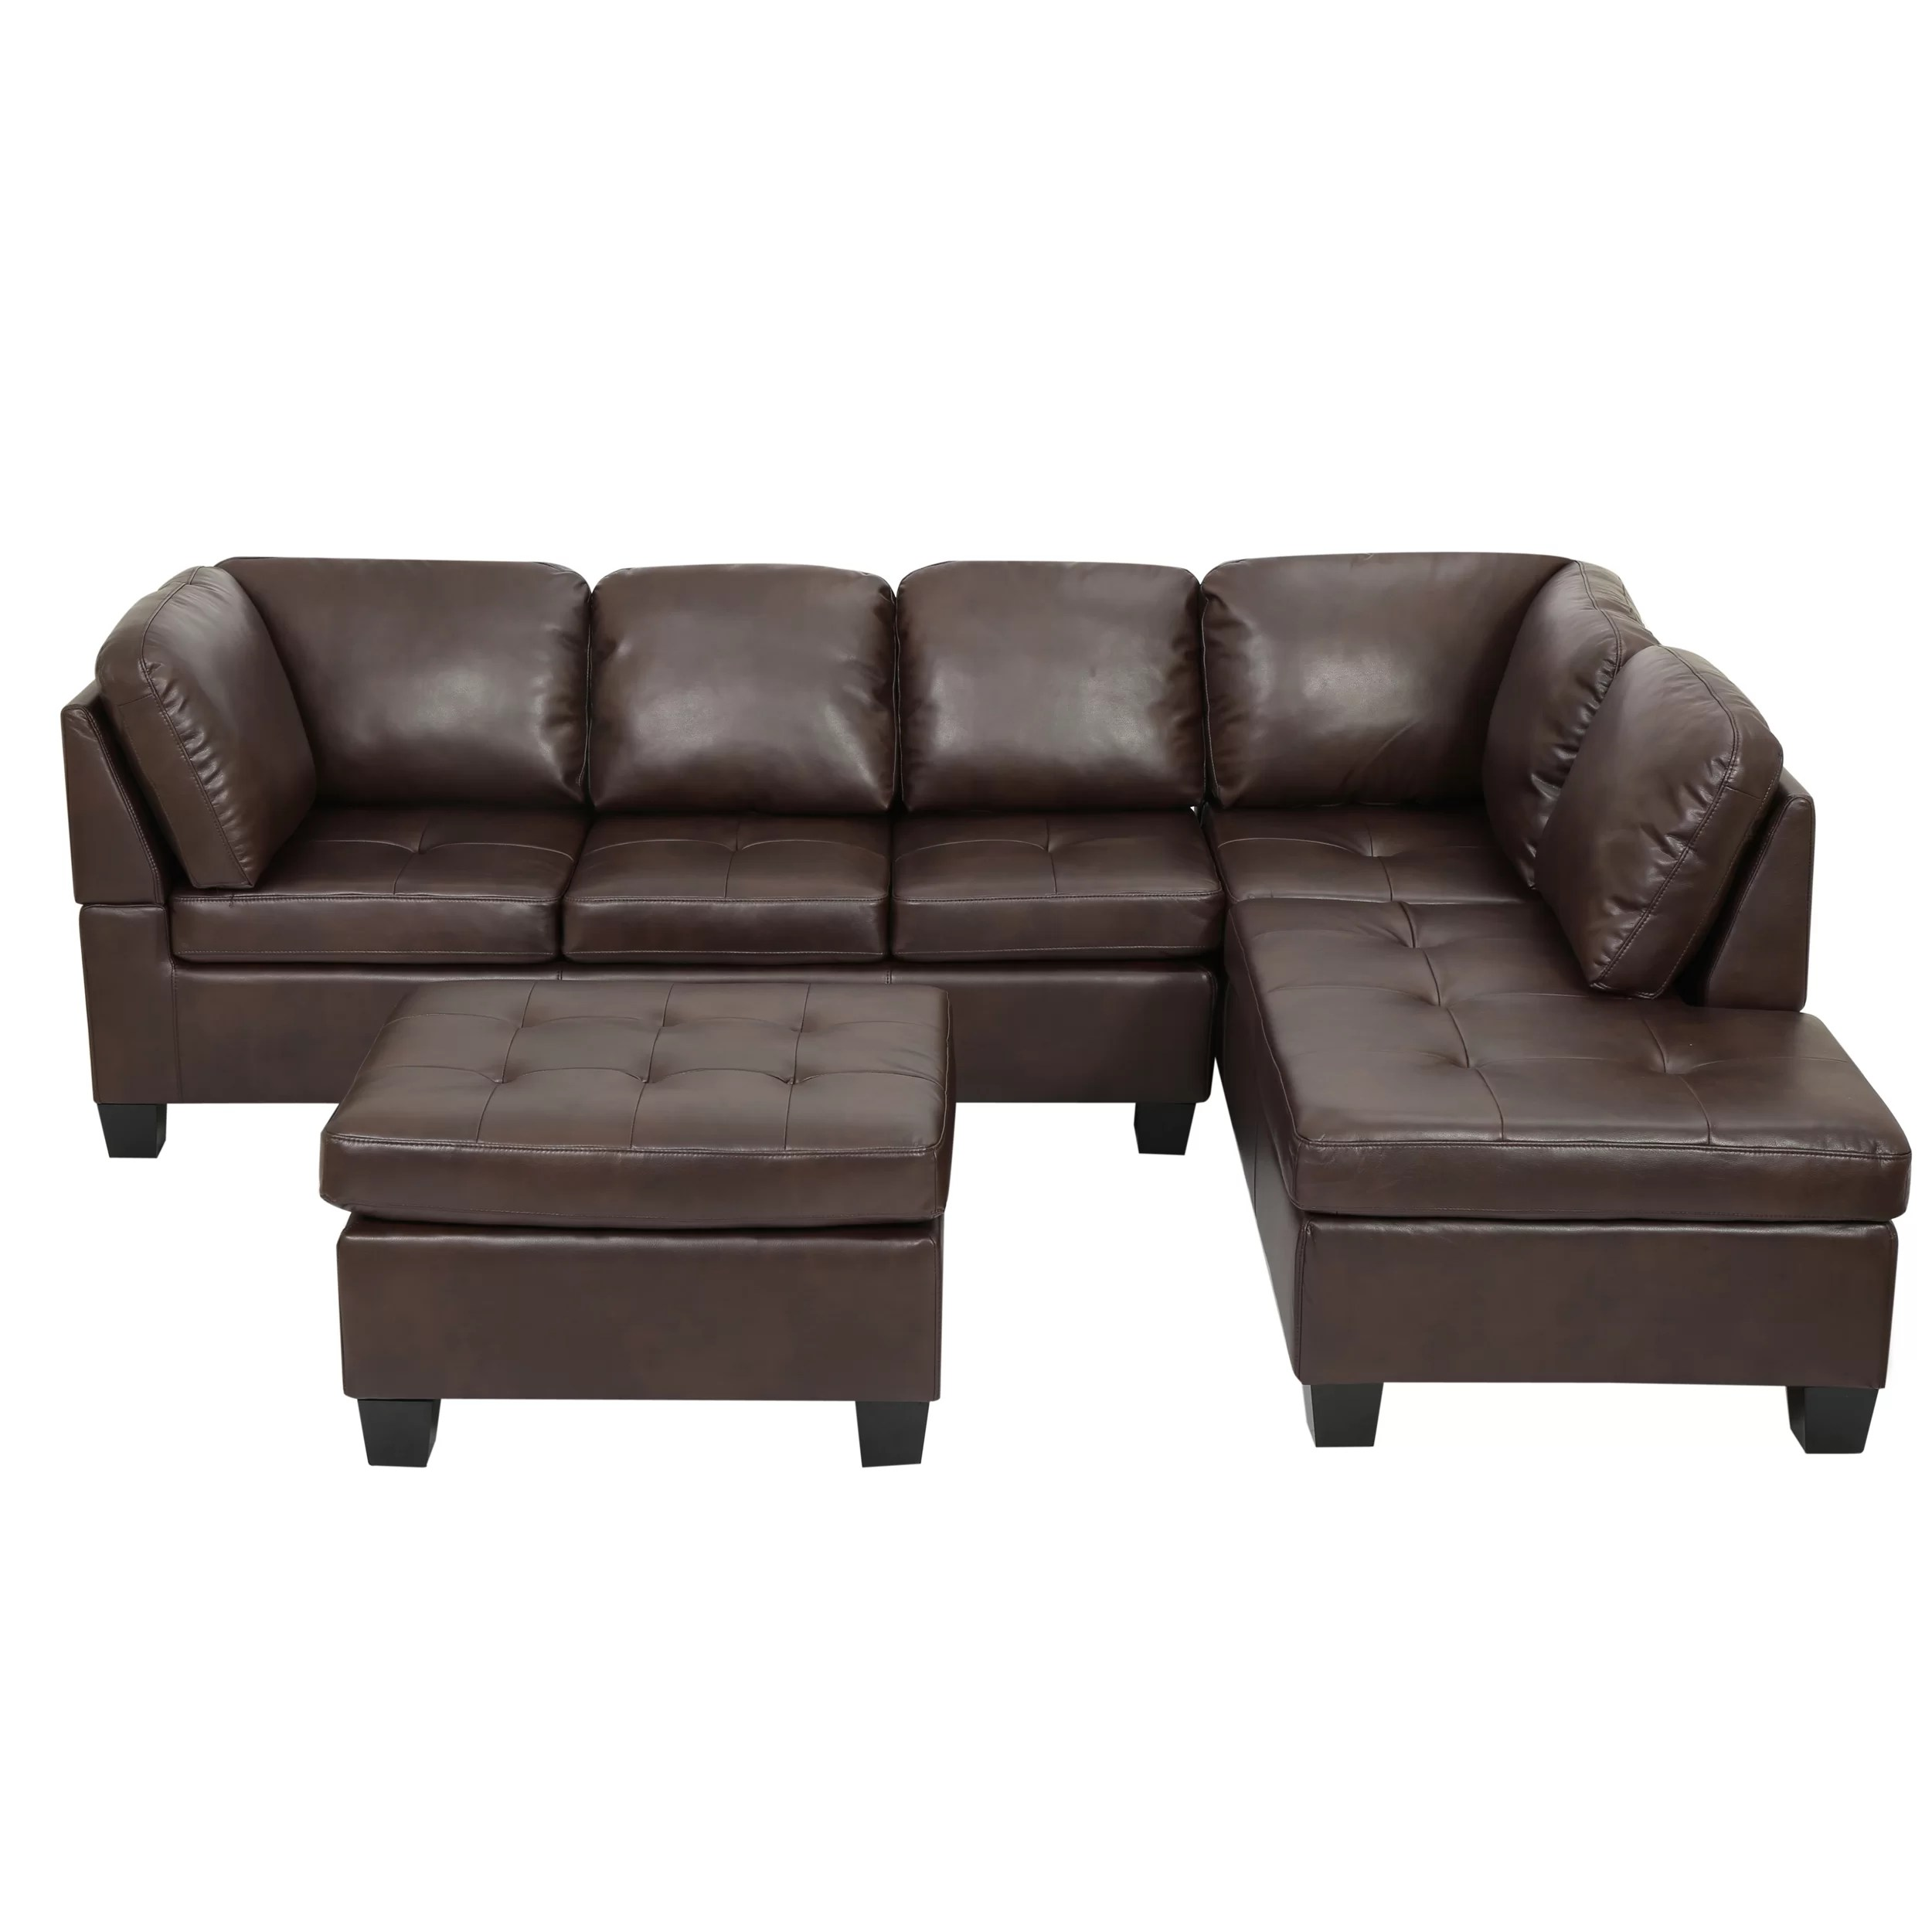 pu leather sofa reviews offer home loft concepts evan sectional and wayfair